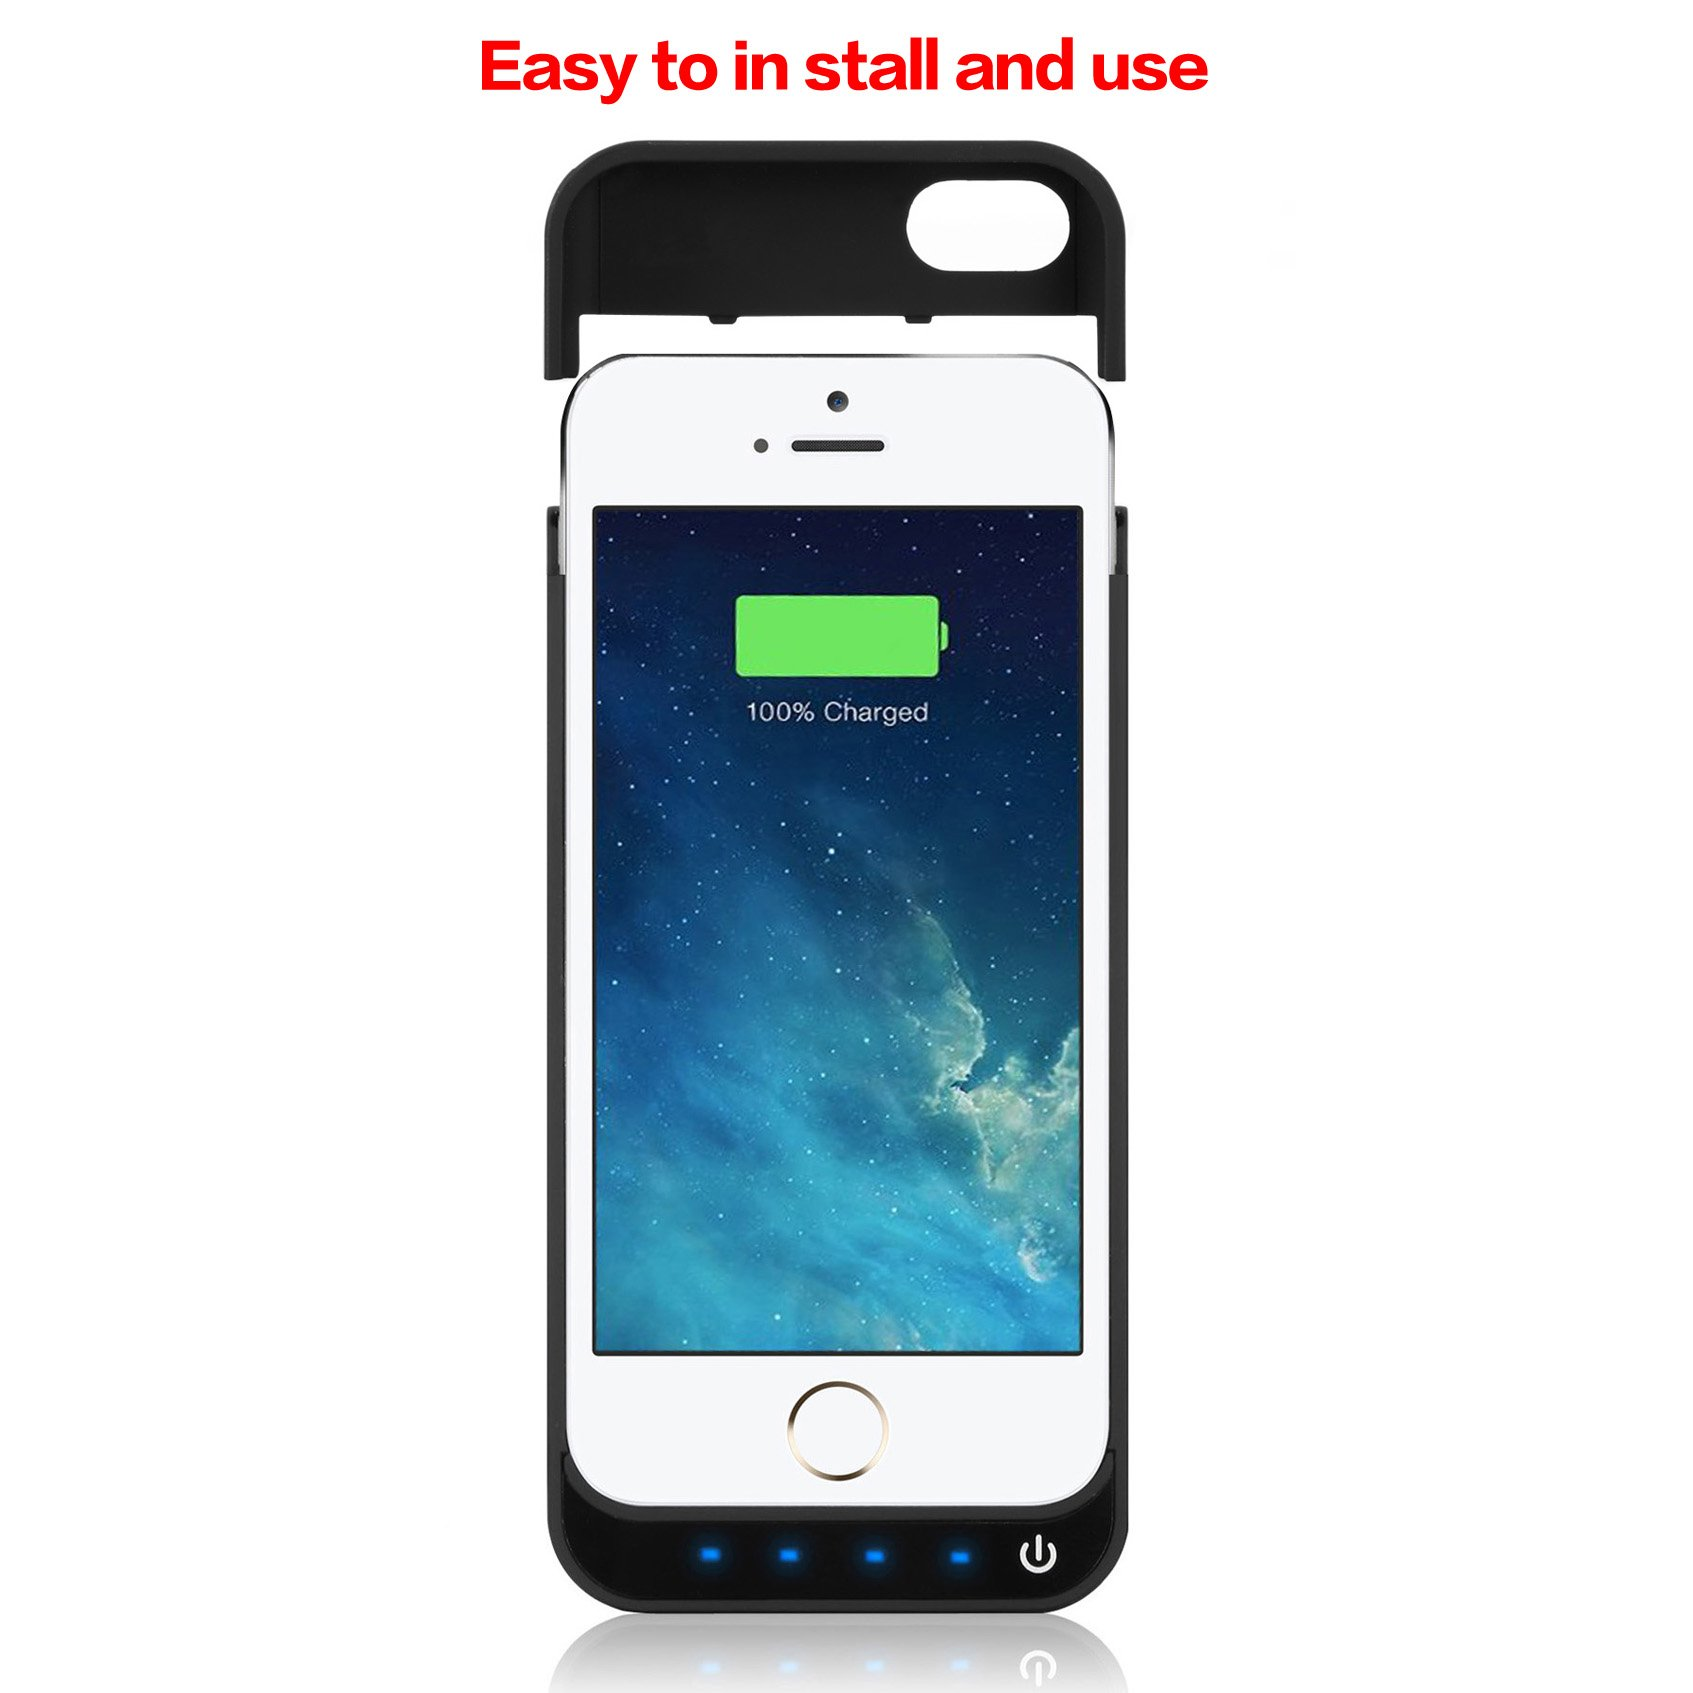 iPhone 5/5S/5C/SE Battery Case iPosible 4500mAh External Rechargeable Charger Case for iPhone 5/5S/5C/SE Charging Case Power Bank Battery Pack [24 Month Warranty] by iPosible (Image #7)